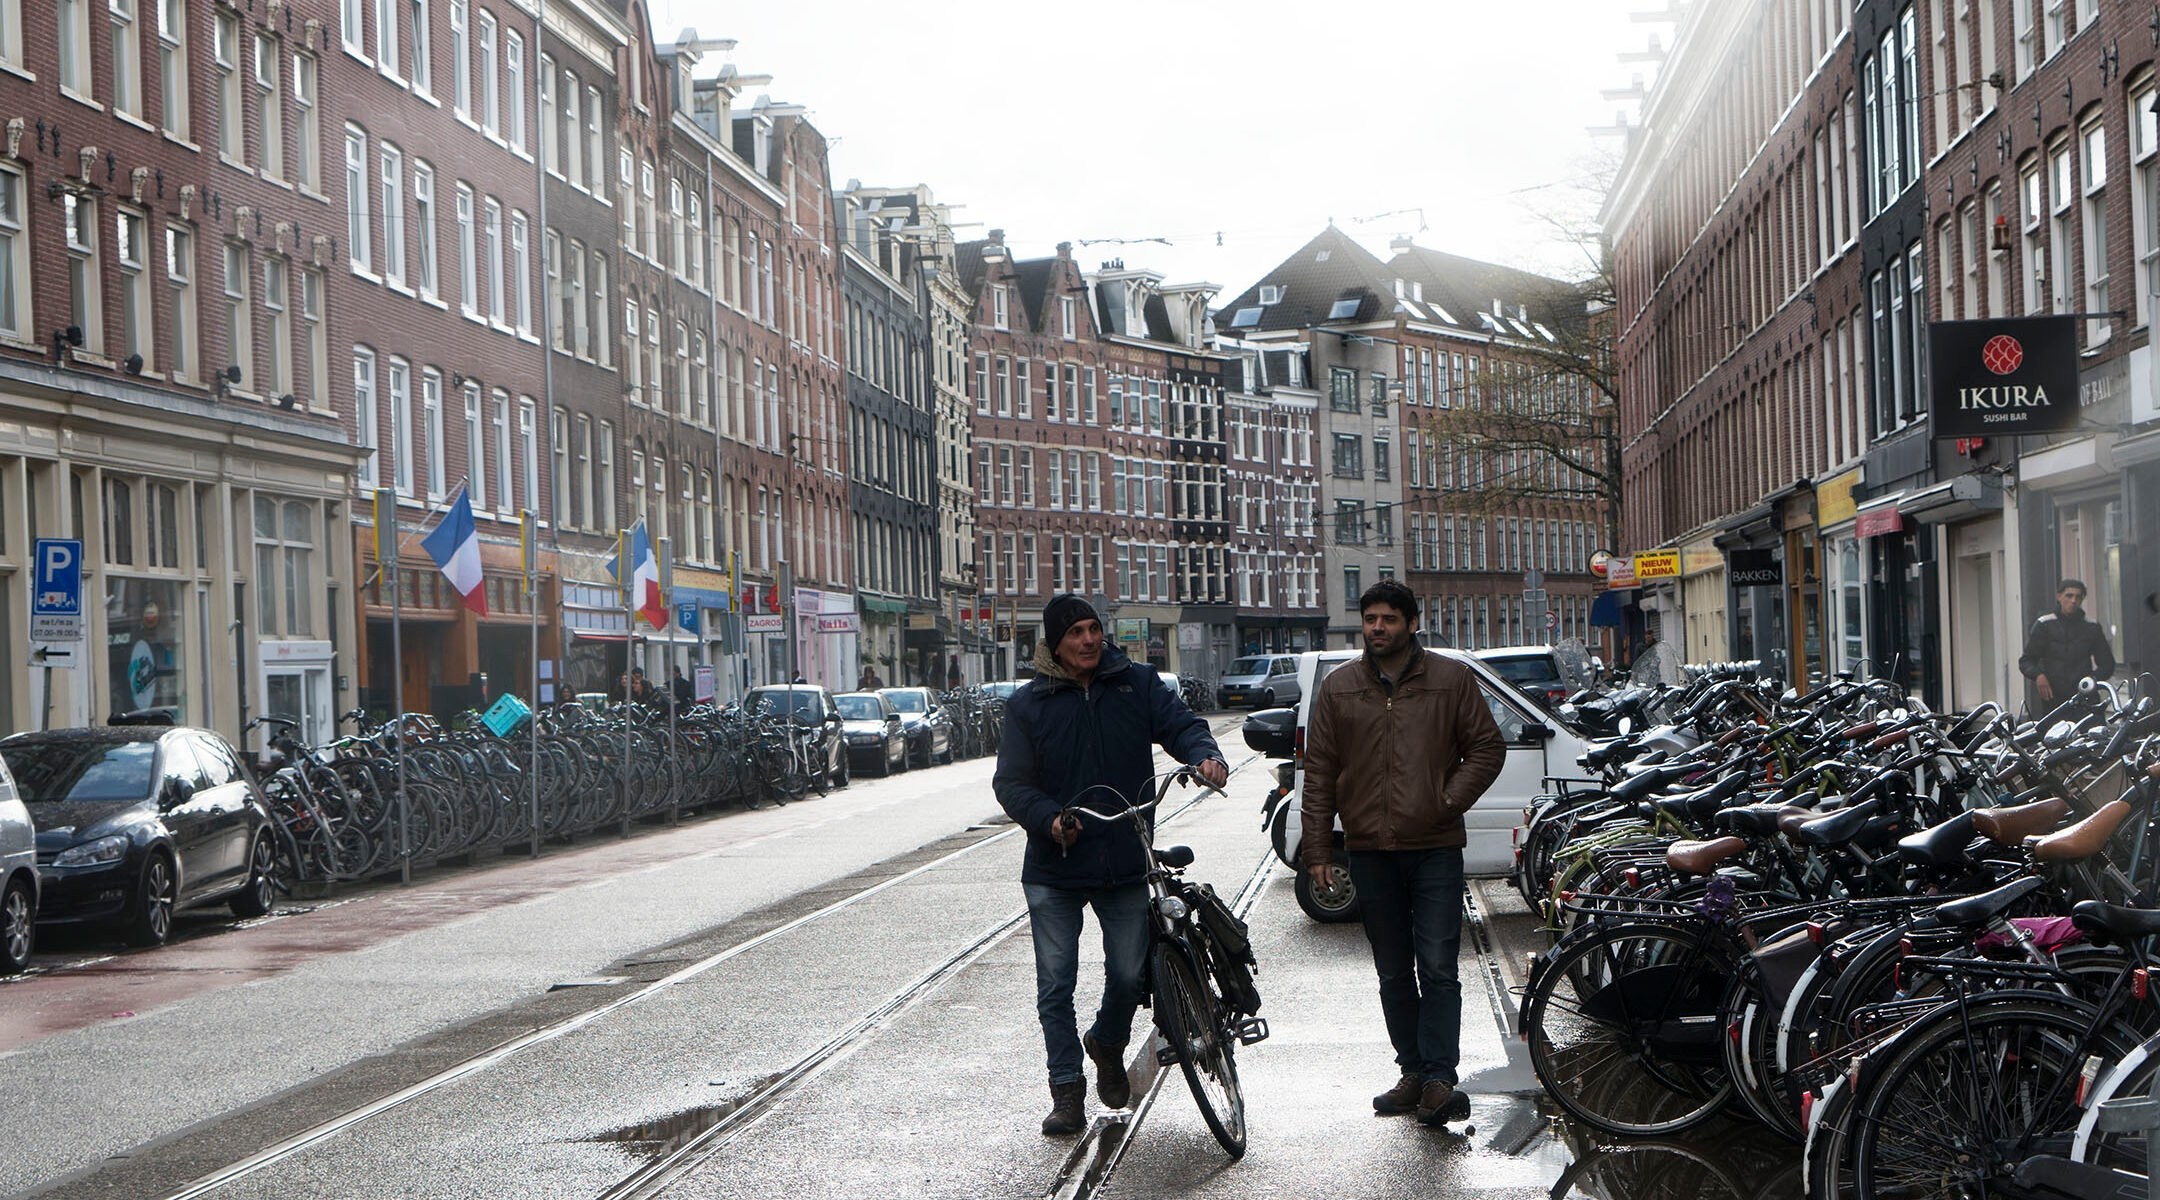 Two men walk down a street in a residential area of Amsterdam, the Netherlands on April 23, 2017. (Cnaan Liphshiz)